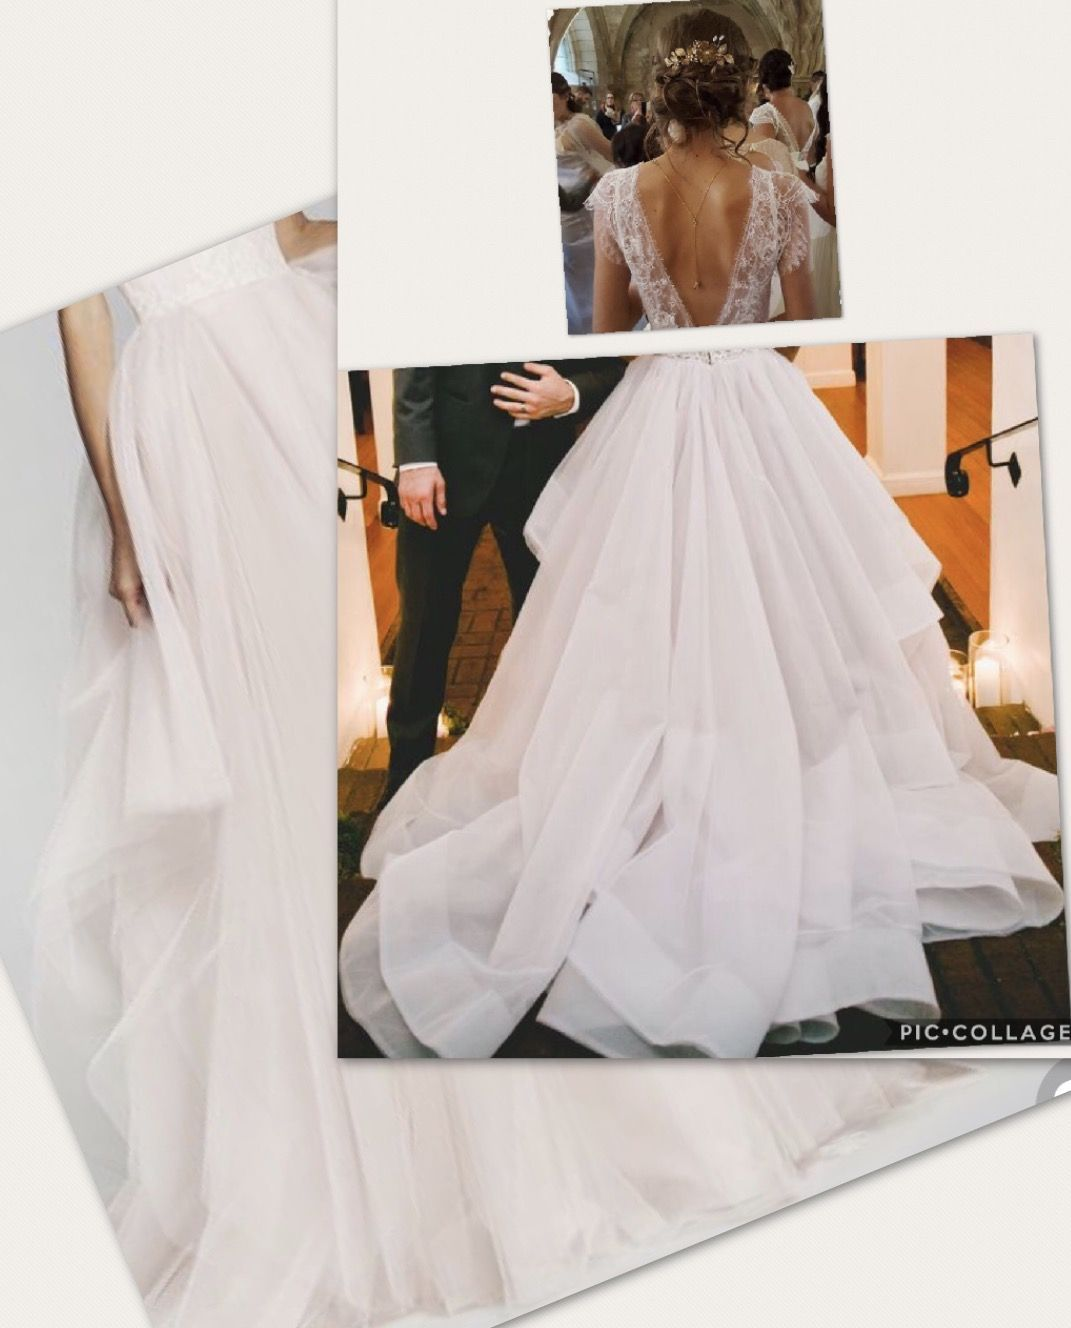 Wedding dress wedding dresses pinterest wedding dress